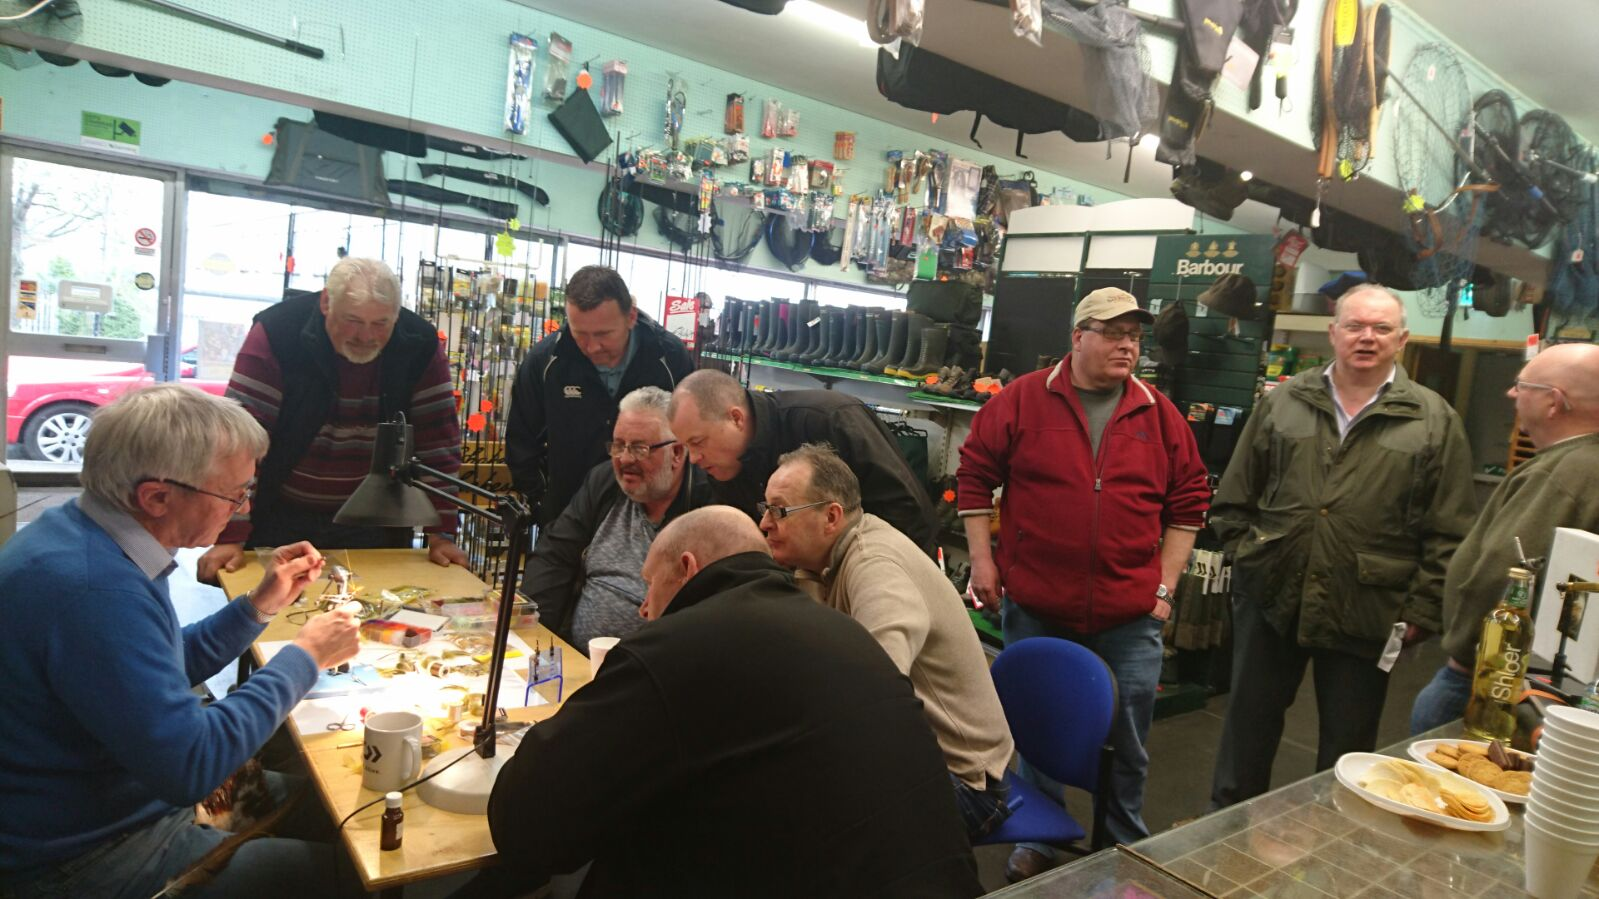 BAC Frankie McPhillips fly dressing in Coburns with local anglers and fly tyers on 22 April 2017